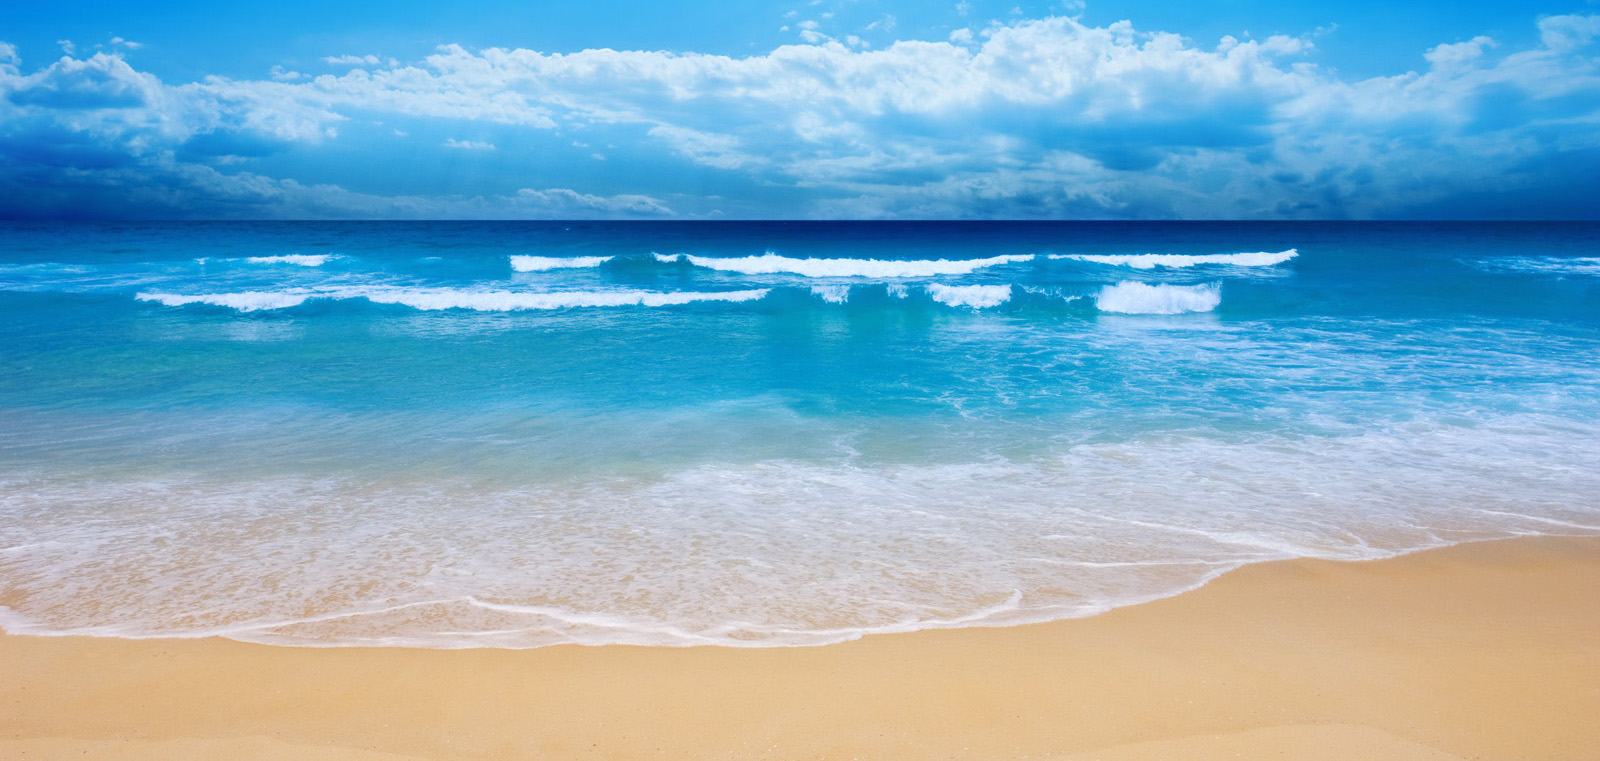 18-sea-ocean-wave-beach-sand-wallpaper